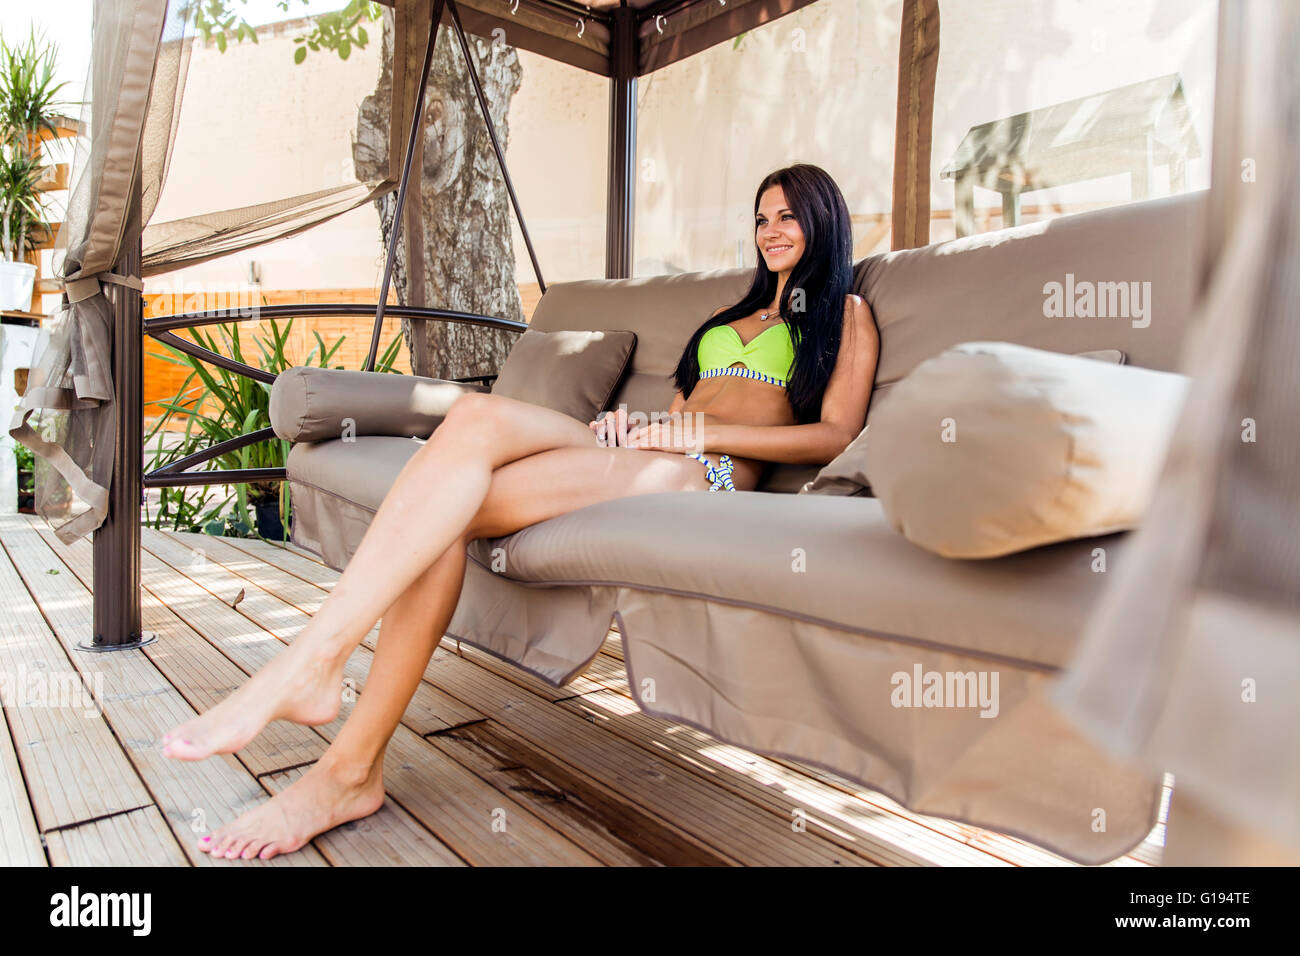 Beautiful young lady shading herself from sun in a big swing and relaxing - Stock Image